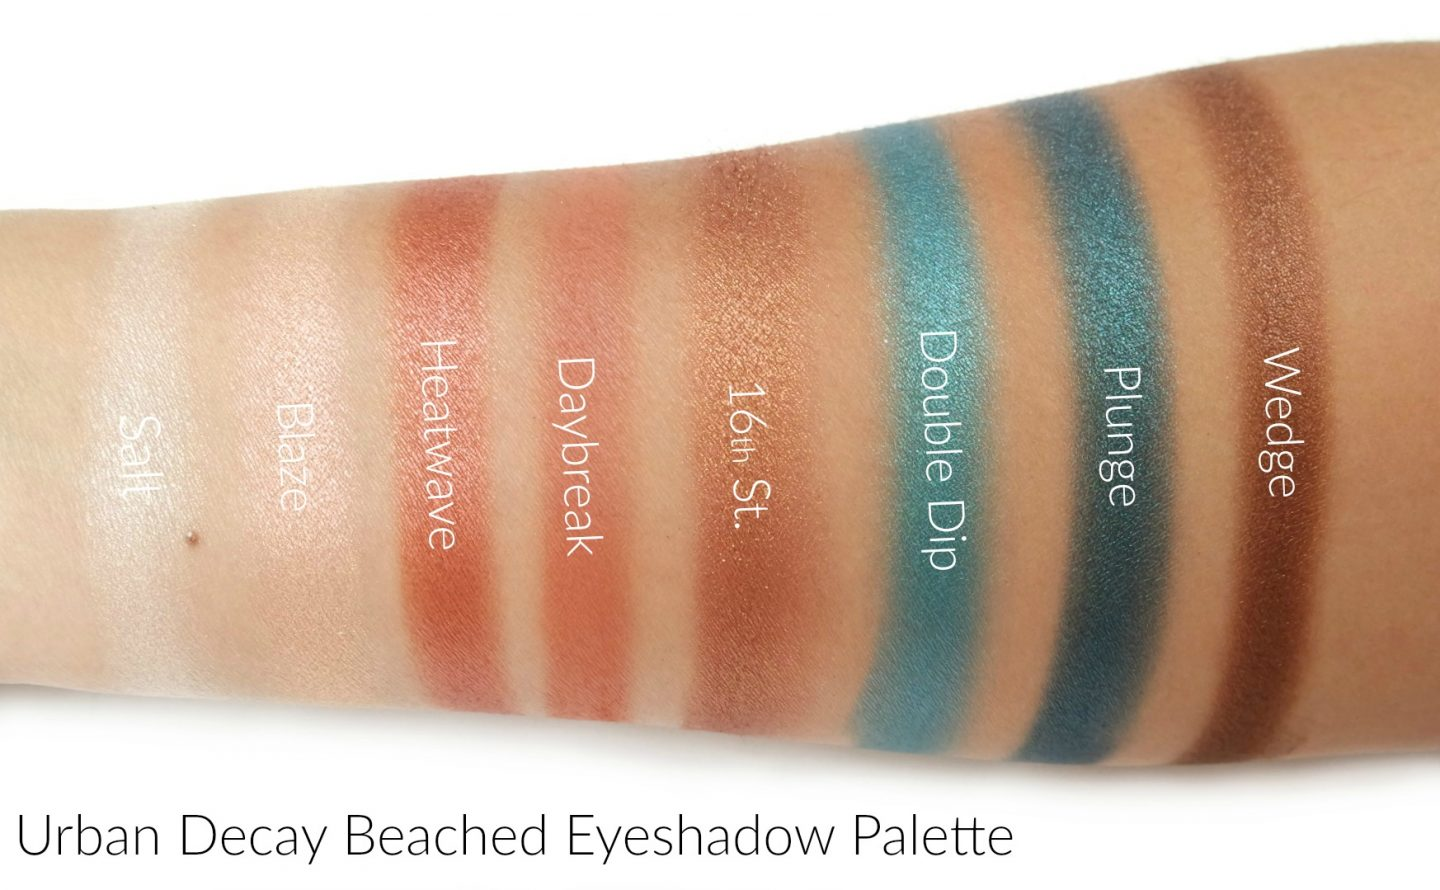 Beached Eyeshadow Palette by Urban Decay #18